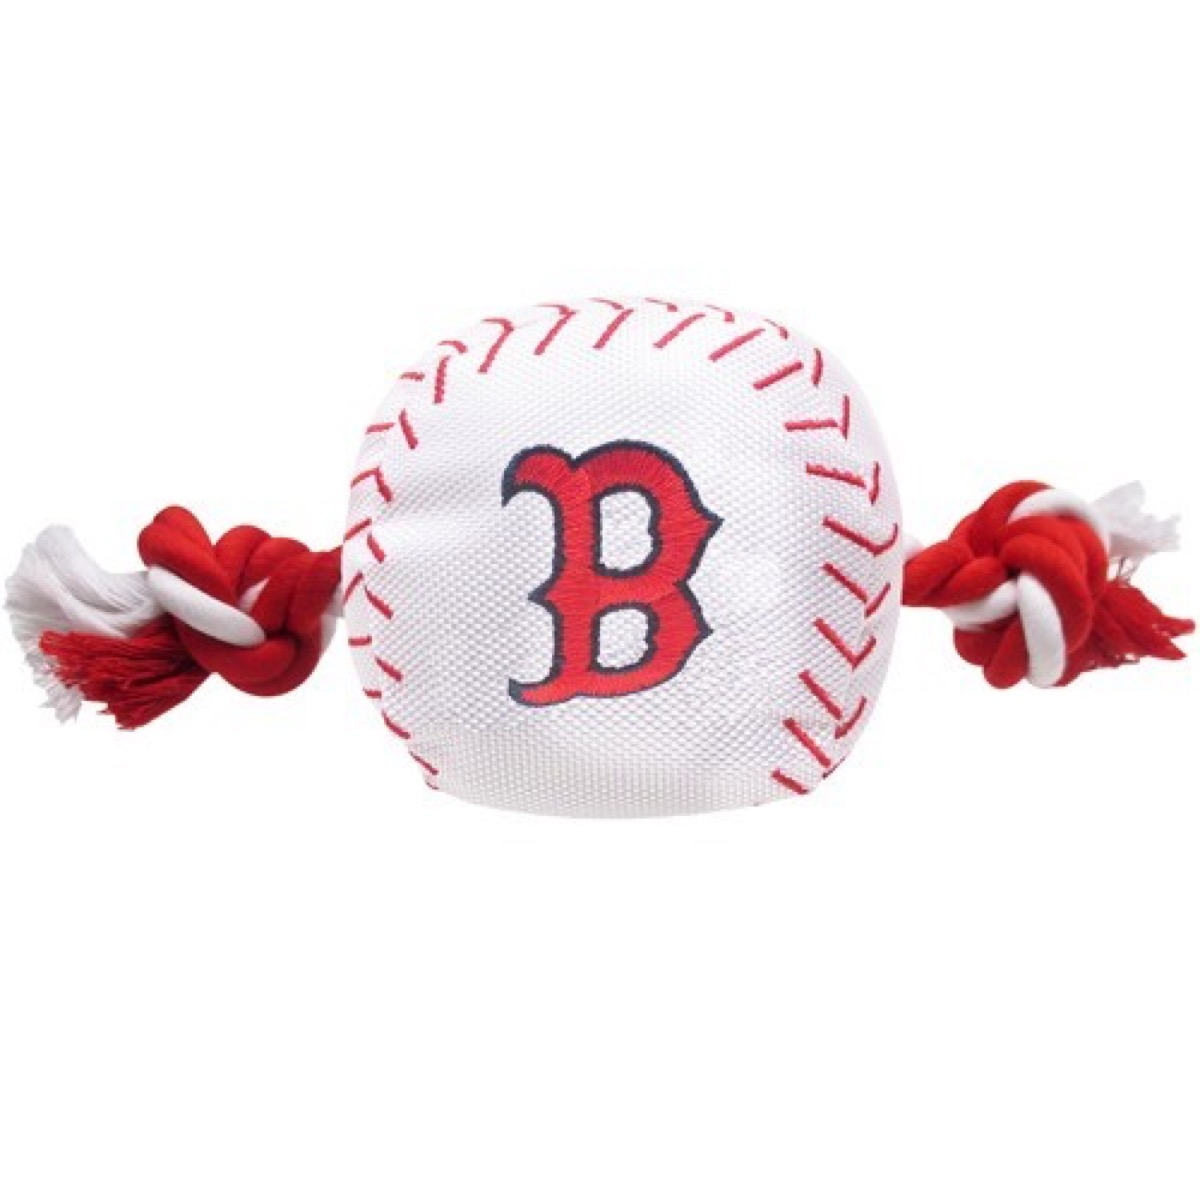 red sox chew toy, best chew toys for puppies